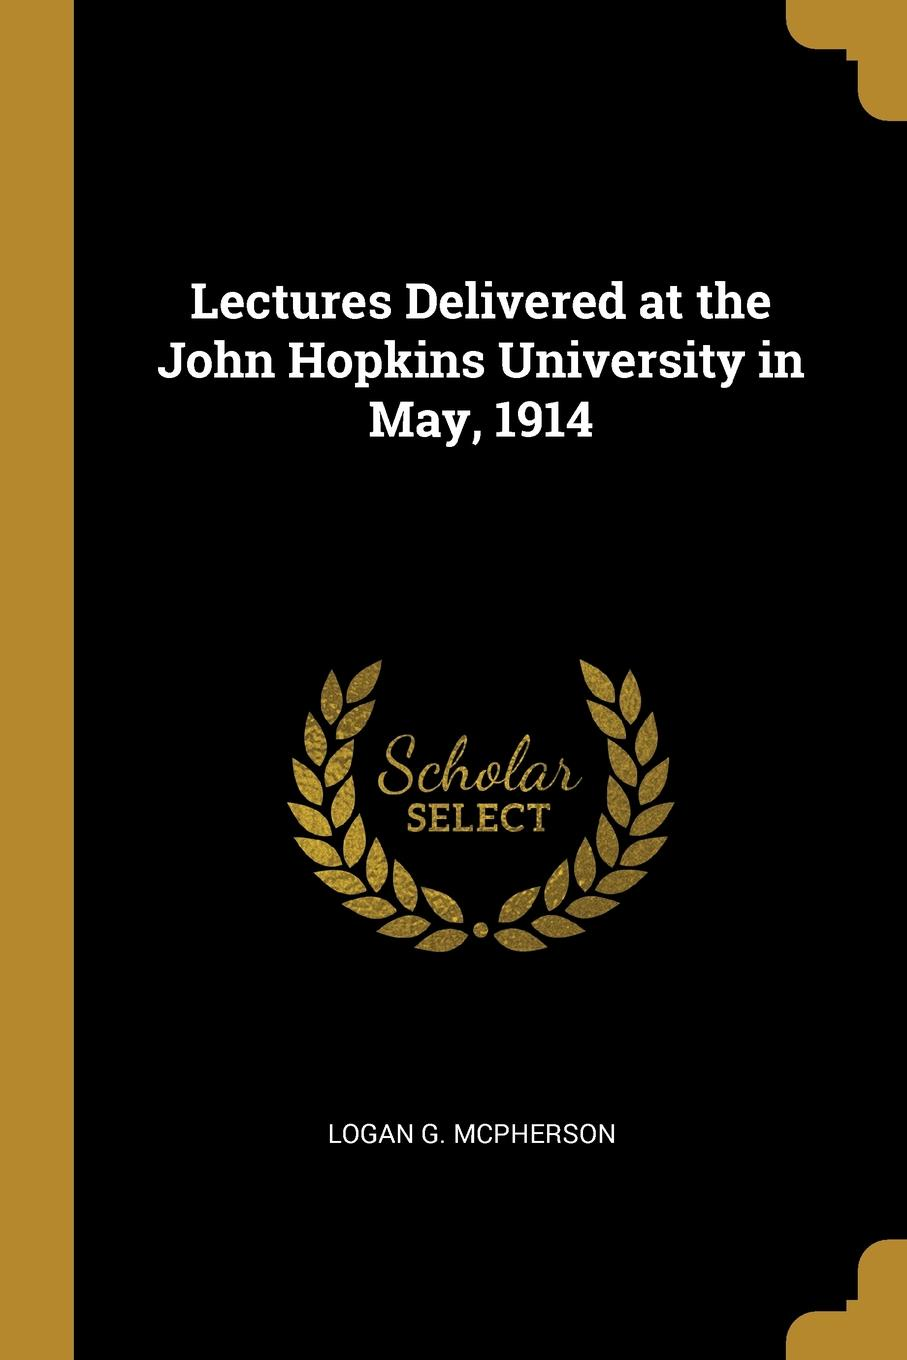 Logan G. McPherson. Lectures Delivered at the John Hopkins University in May, 1914